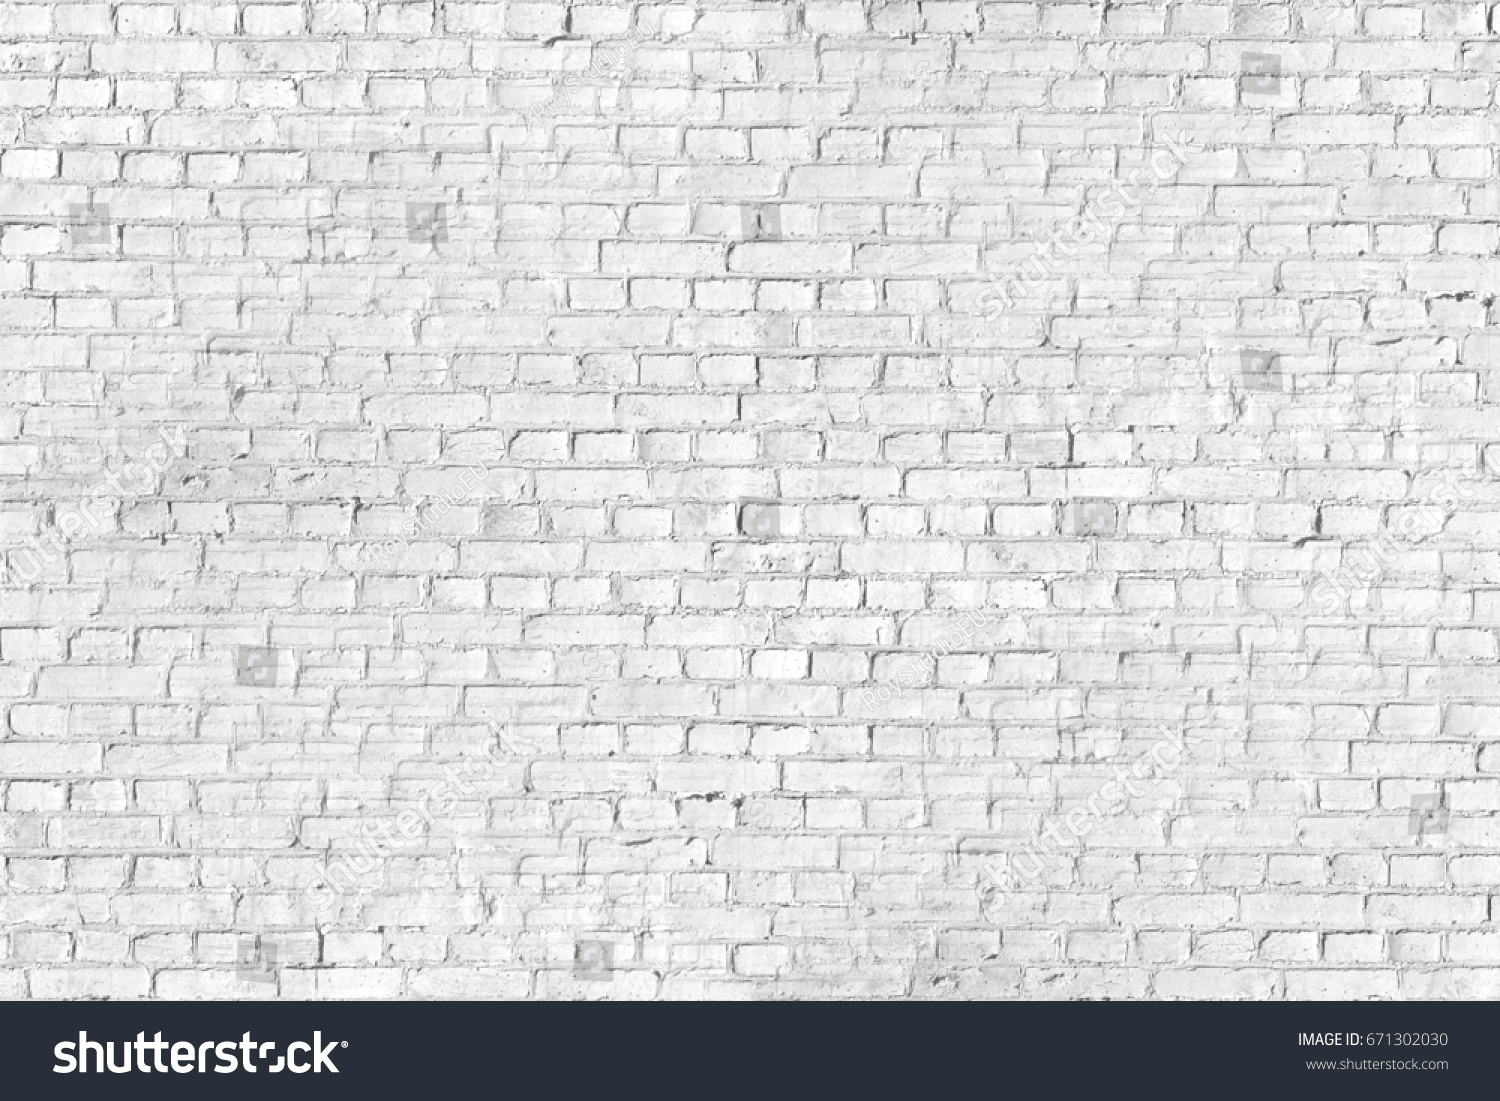 White Brick Wall Background Texture Black And Seamless Pattern